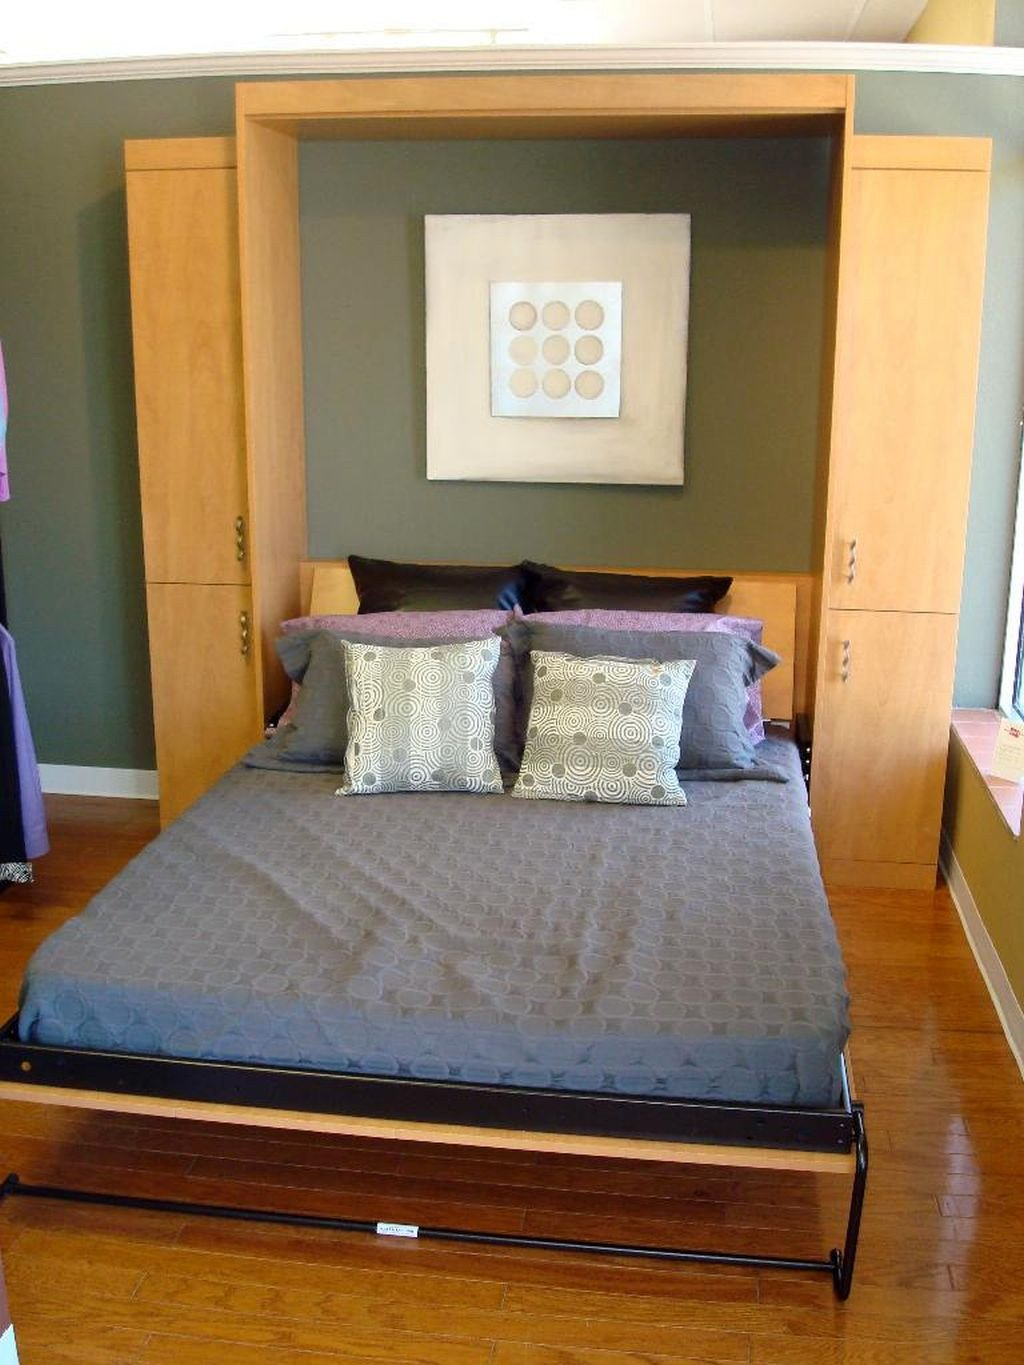 Room Decor for Small Rooms Awesome 20 Space Saving Murphy Bed Design Ideas for Small Rooms